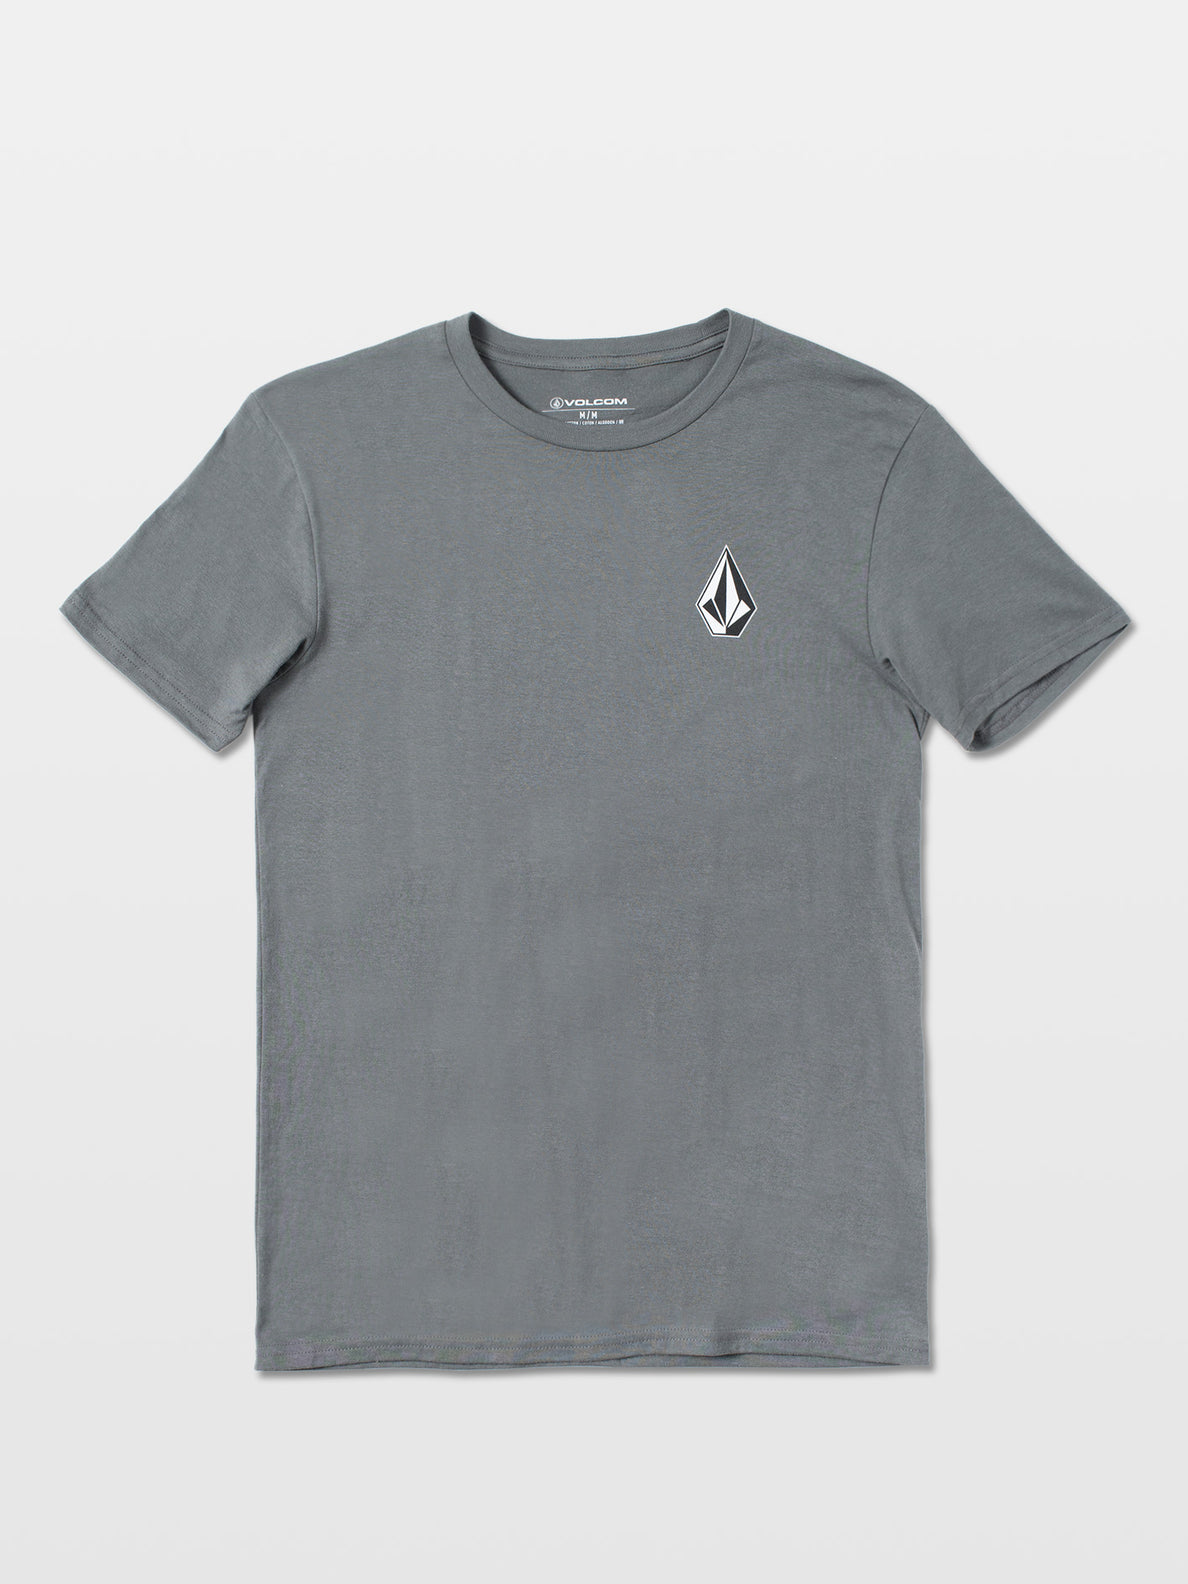 Euro Corpo Short Sleeve Tee - Charcoal